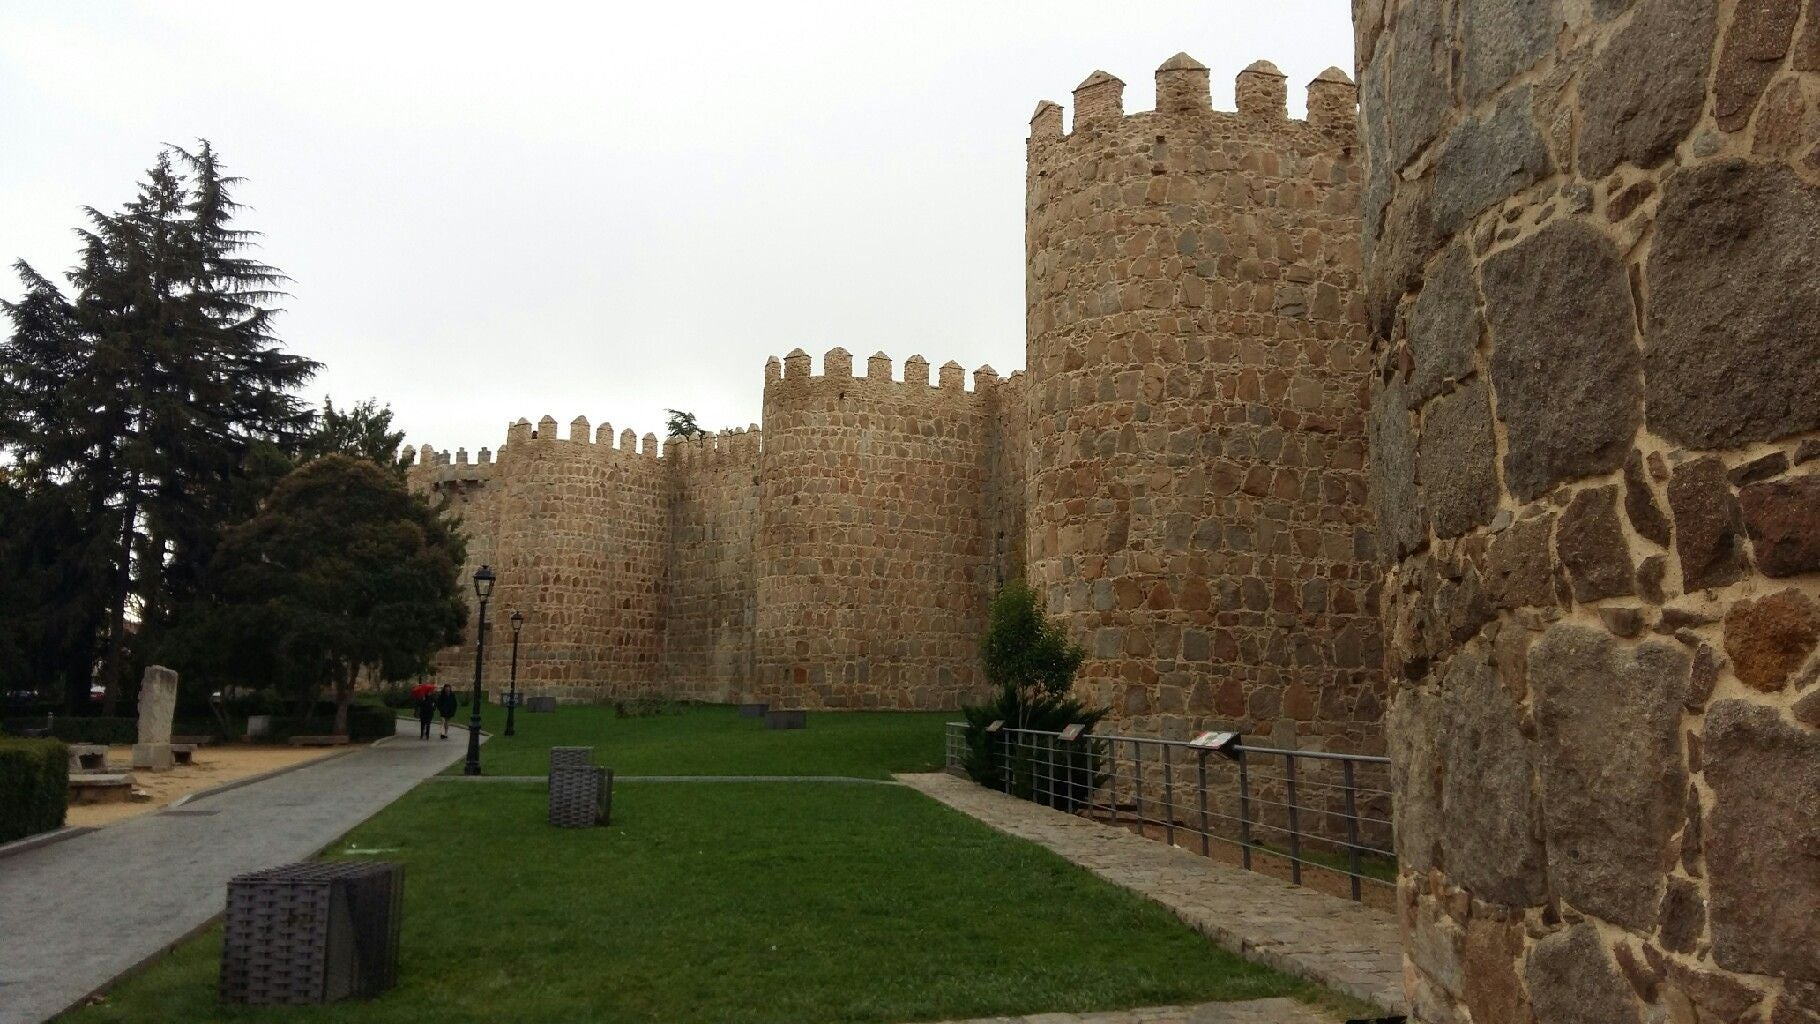 Pared en Murallas de Ávila